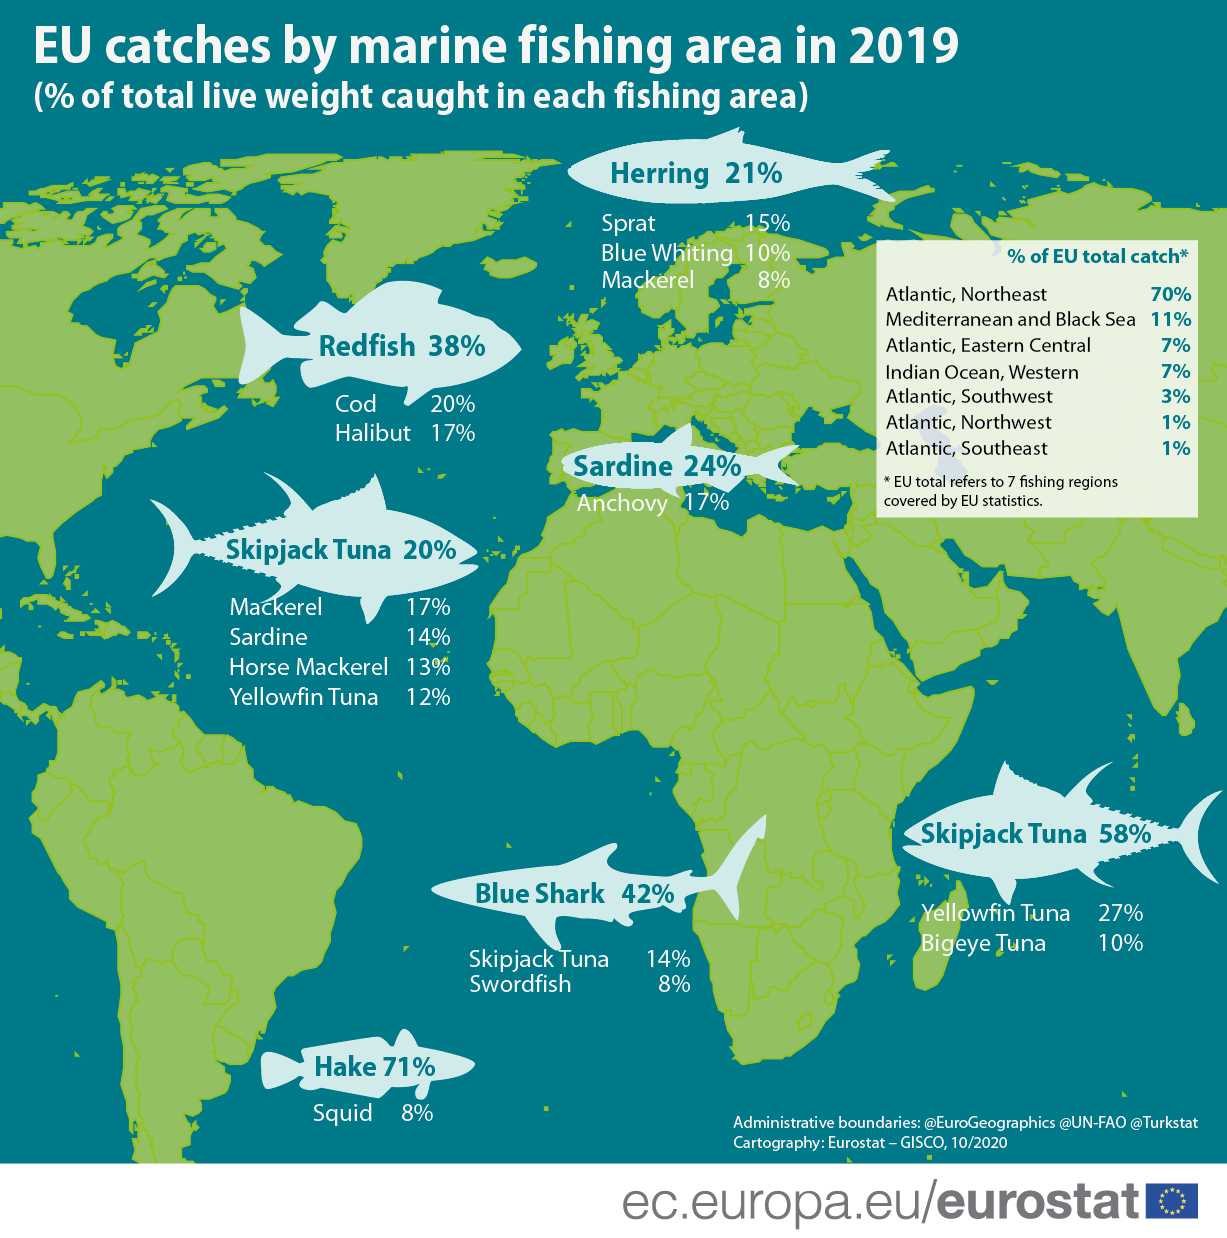 Infographic: EU catches by marine fishing area in 2019